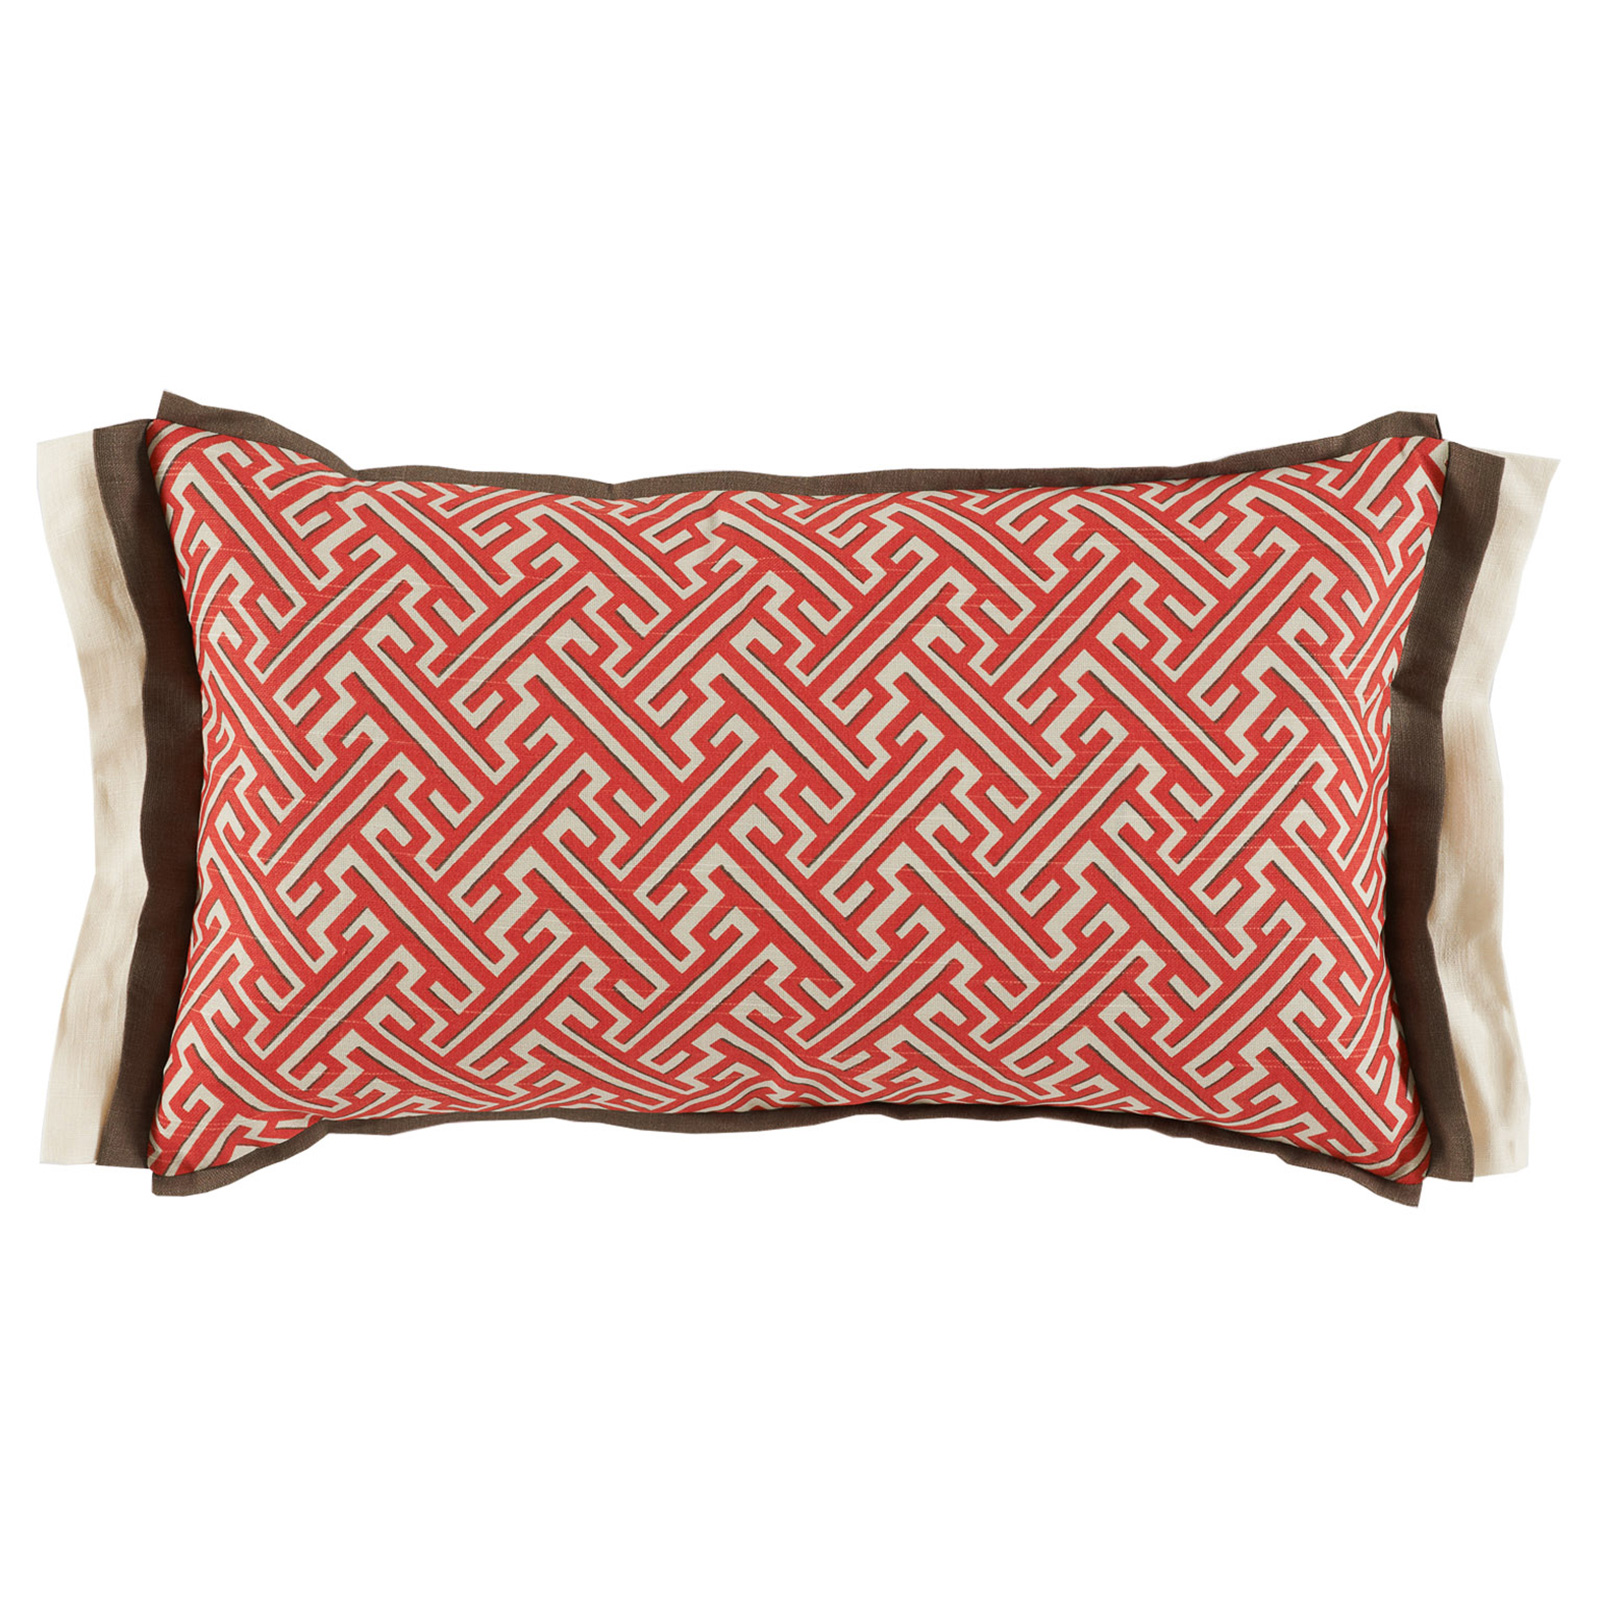 Bluth Modern Classic Graphic Red Pattern Pillow - 13x22